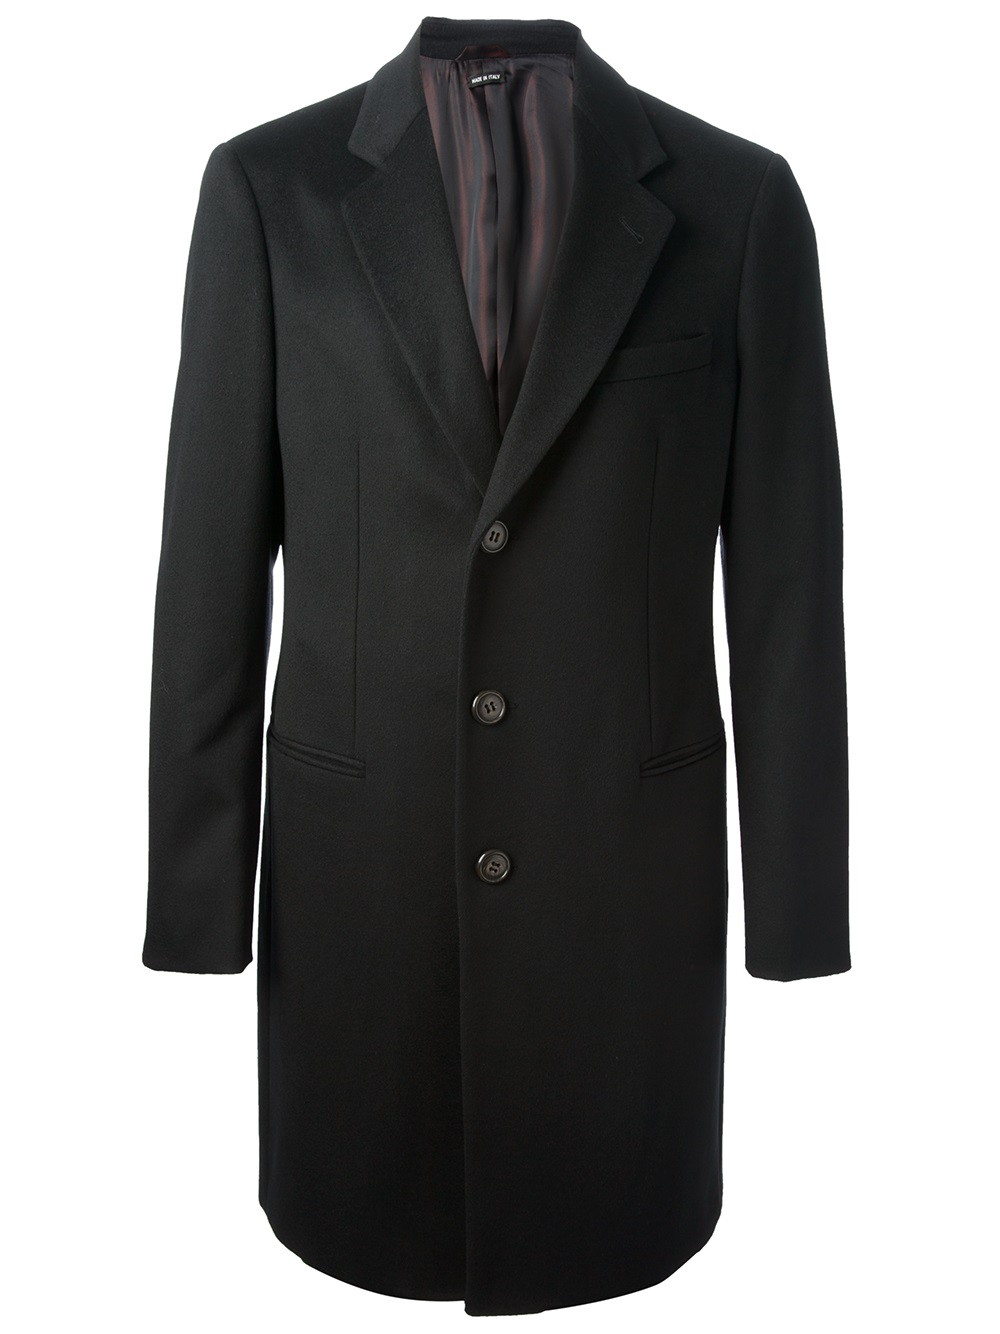 Giorgio Armani Dress Coat In Black For Men Lyst